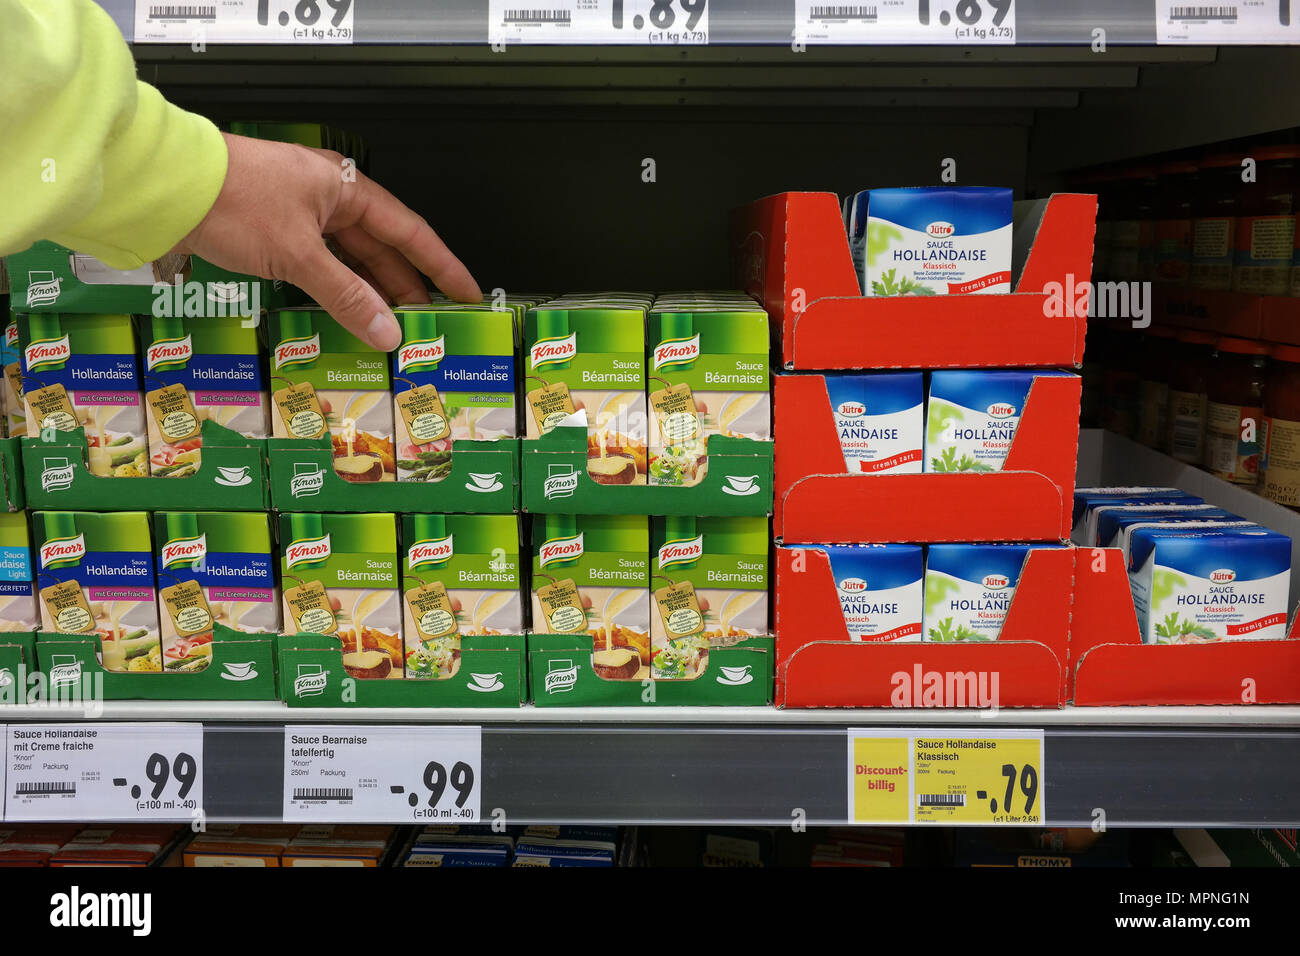 Knorr ready-to-use cartons in a store - Stock Image